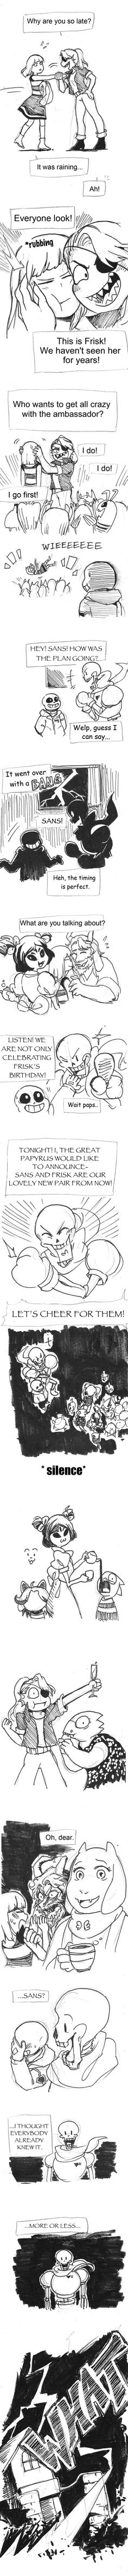 26 post Afterwords 2 There is no secret in the group with Papyrus. Previous Next ====== ○ Relationship: Sans x Frisk ○ Undertale belongs. Stand-in Afterword 2 Sans E Frisk, Undertale Love, Undertale Comic Funny, Undertale Memes, Undertale Ships, Undertale Drawings, Undertale Fanart, Steven Universe, Fnaf